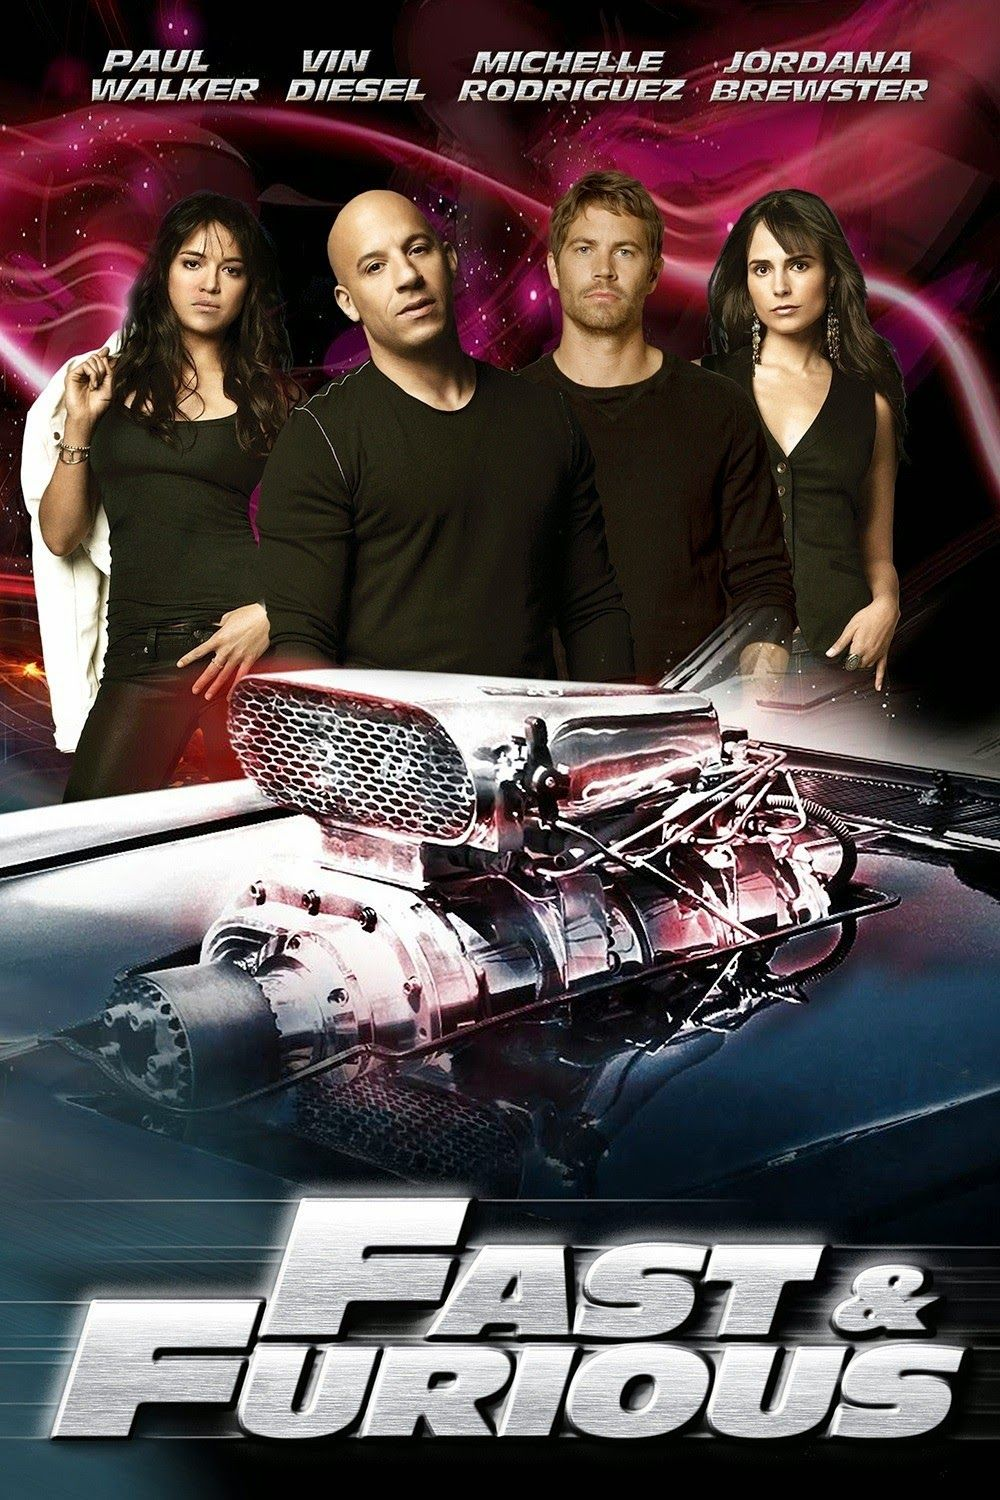 Word Daily Video Fast Furious 2009 In 2020 Fast Furious 4 Furious Movie Fast And Furious